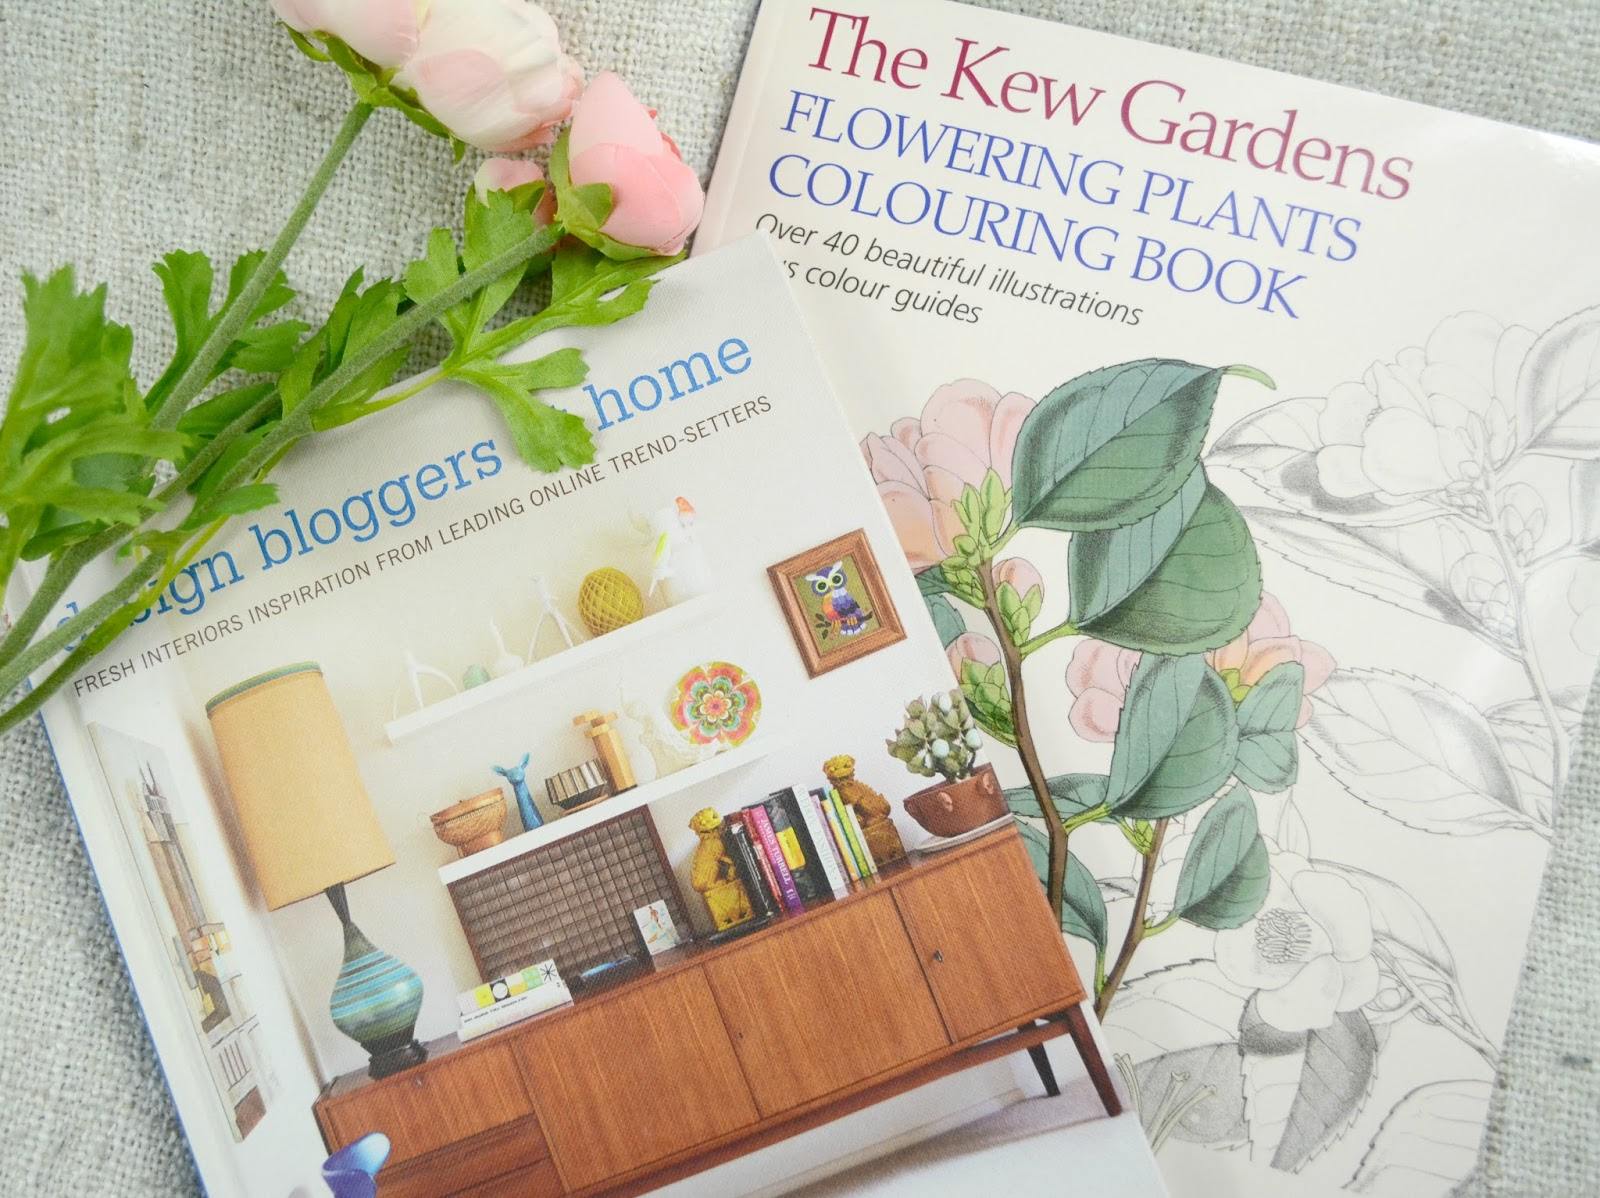 Great Design Bloggers At Home By Ellie Tennant  Perfect Timing For This Book, I  Love Interior Design And My Partner And I Are Refurbishing Our Entire House.